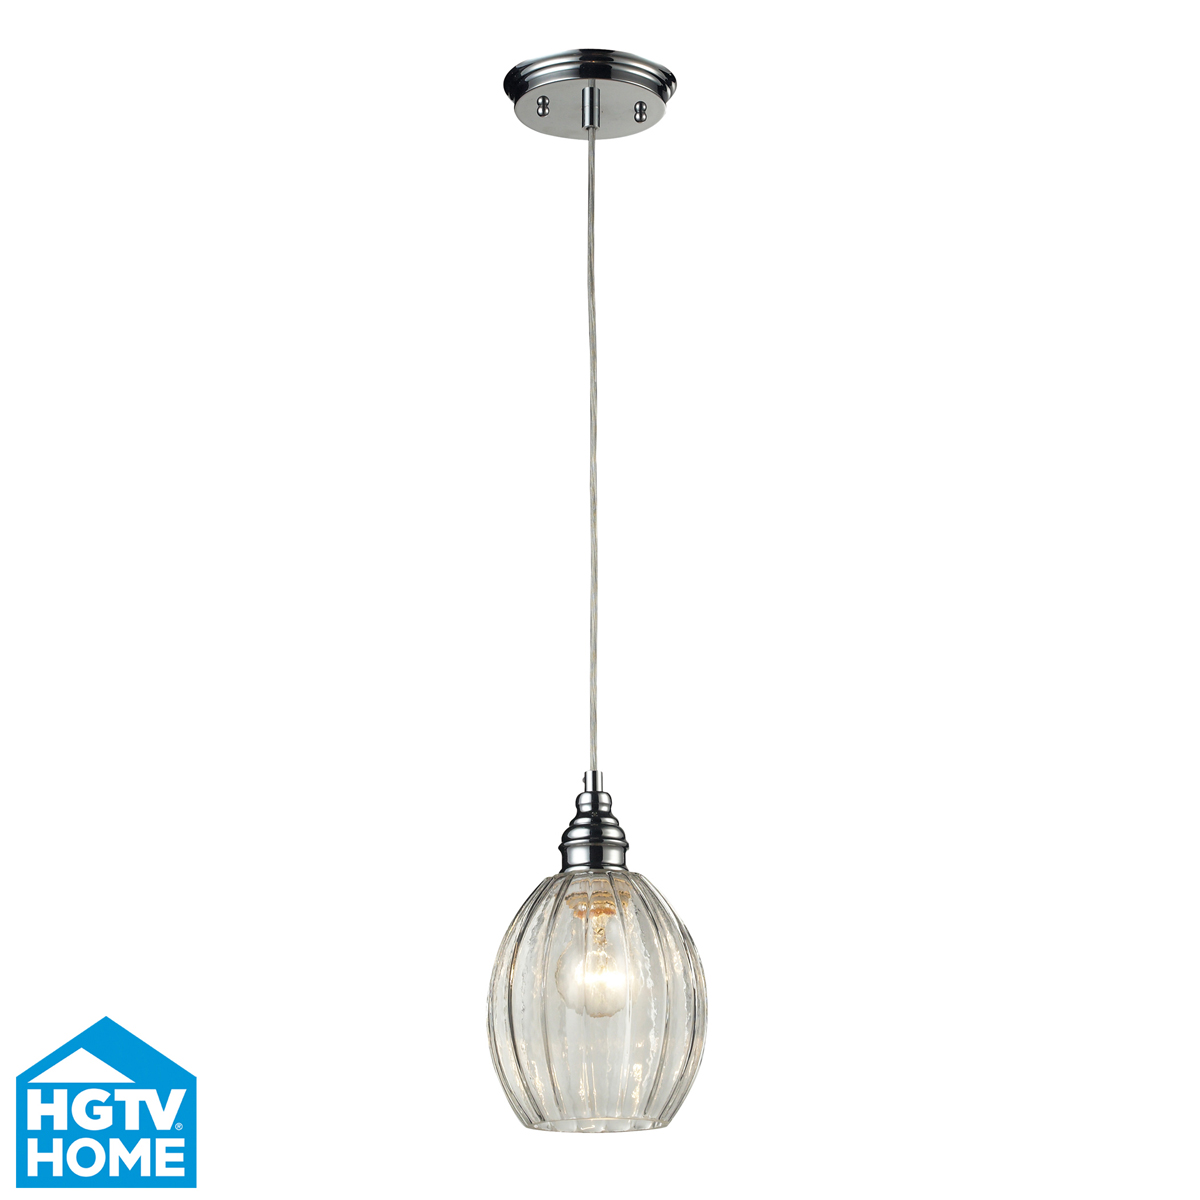 ELK Lighting (46017/1) Danica 6 Inch Mini-Pendant